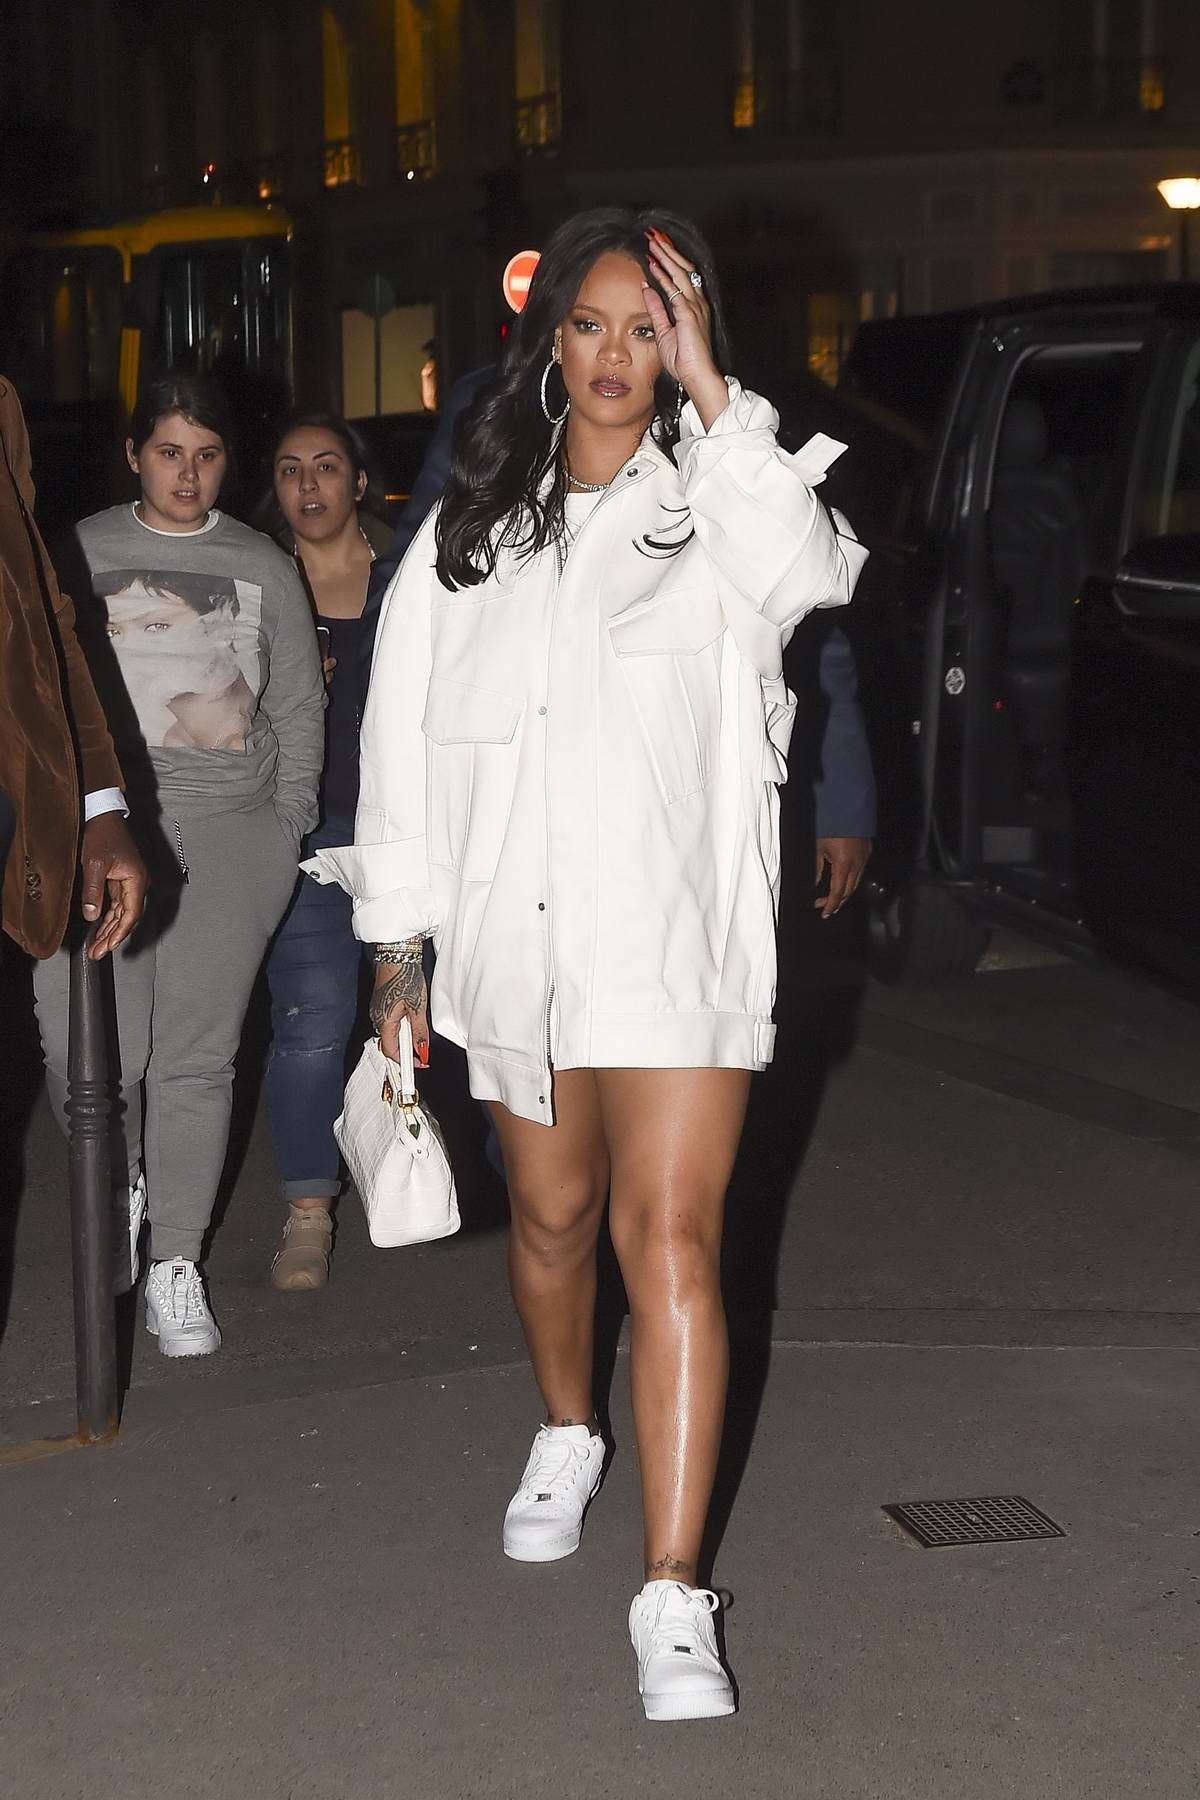 Rihanna rocks an all white ensemble as she heads to L'Avenue's after the Fenty Pop up Store event in Paris, France